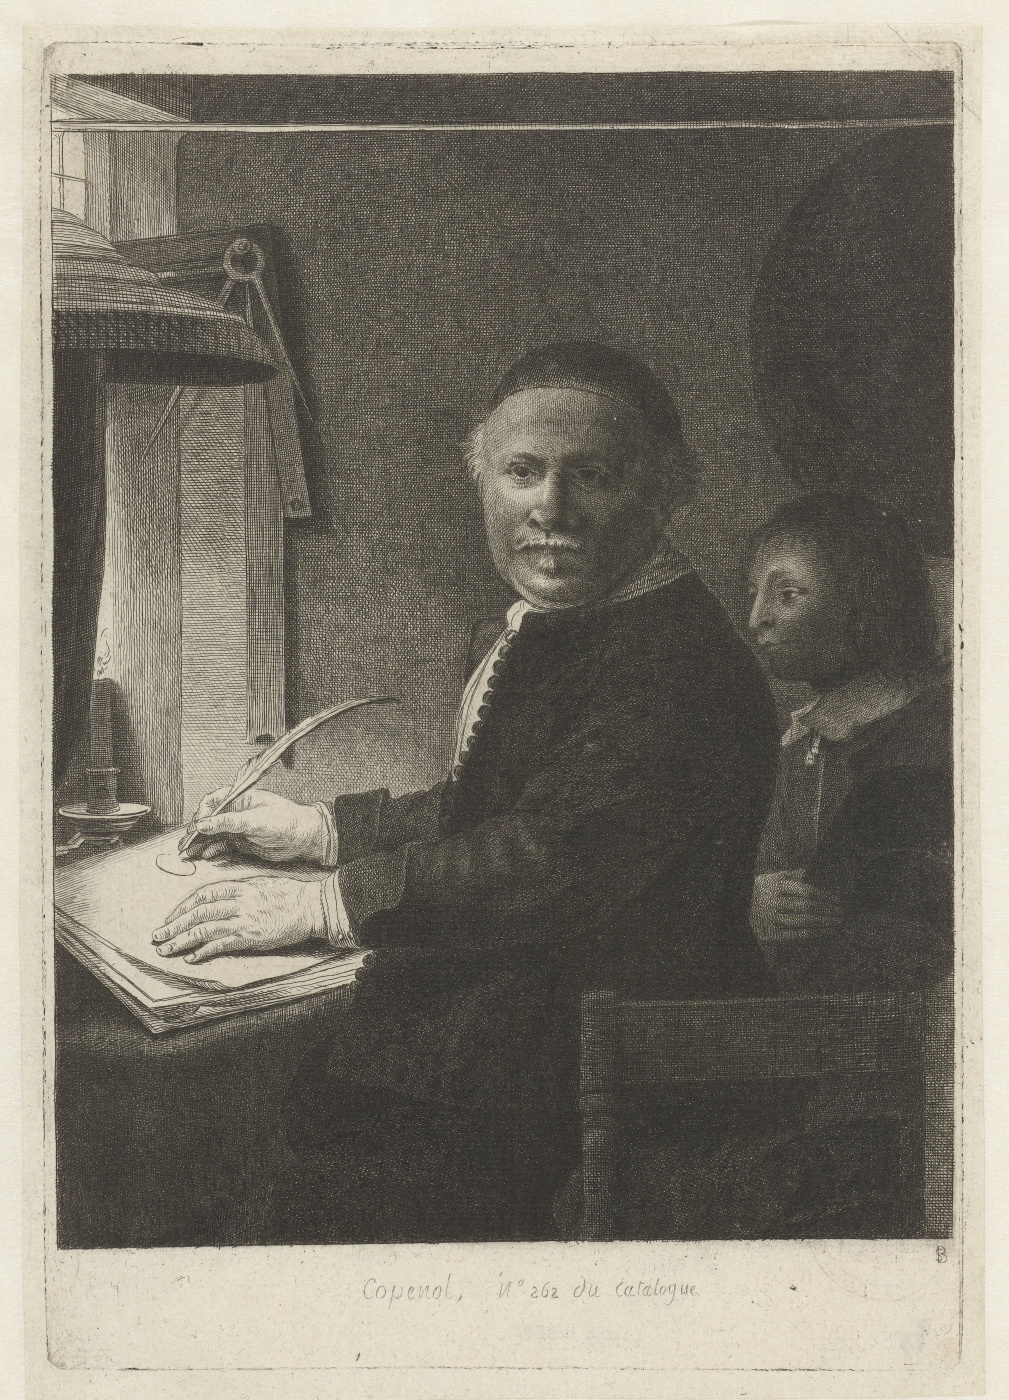 Rembrandt Harmenszoon van Rijn. A portrait of the calligrapher Lieven Willems Coppenole